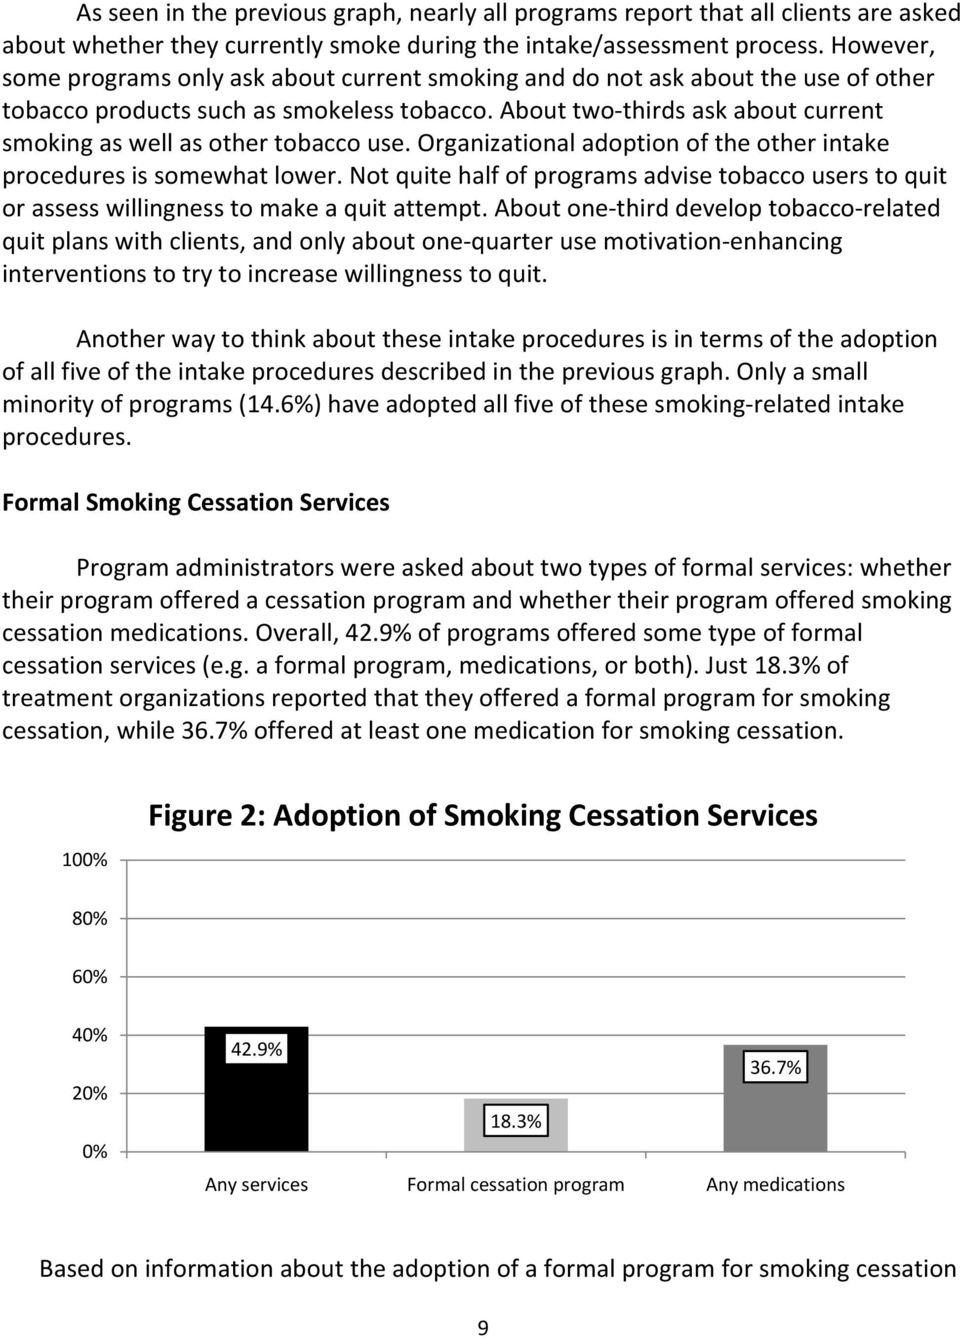 About two thirds ask about current smoking as well as other tobacco use. Organizational adoption of the other intake procedures is somewhat lower.